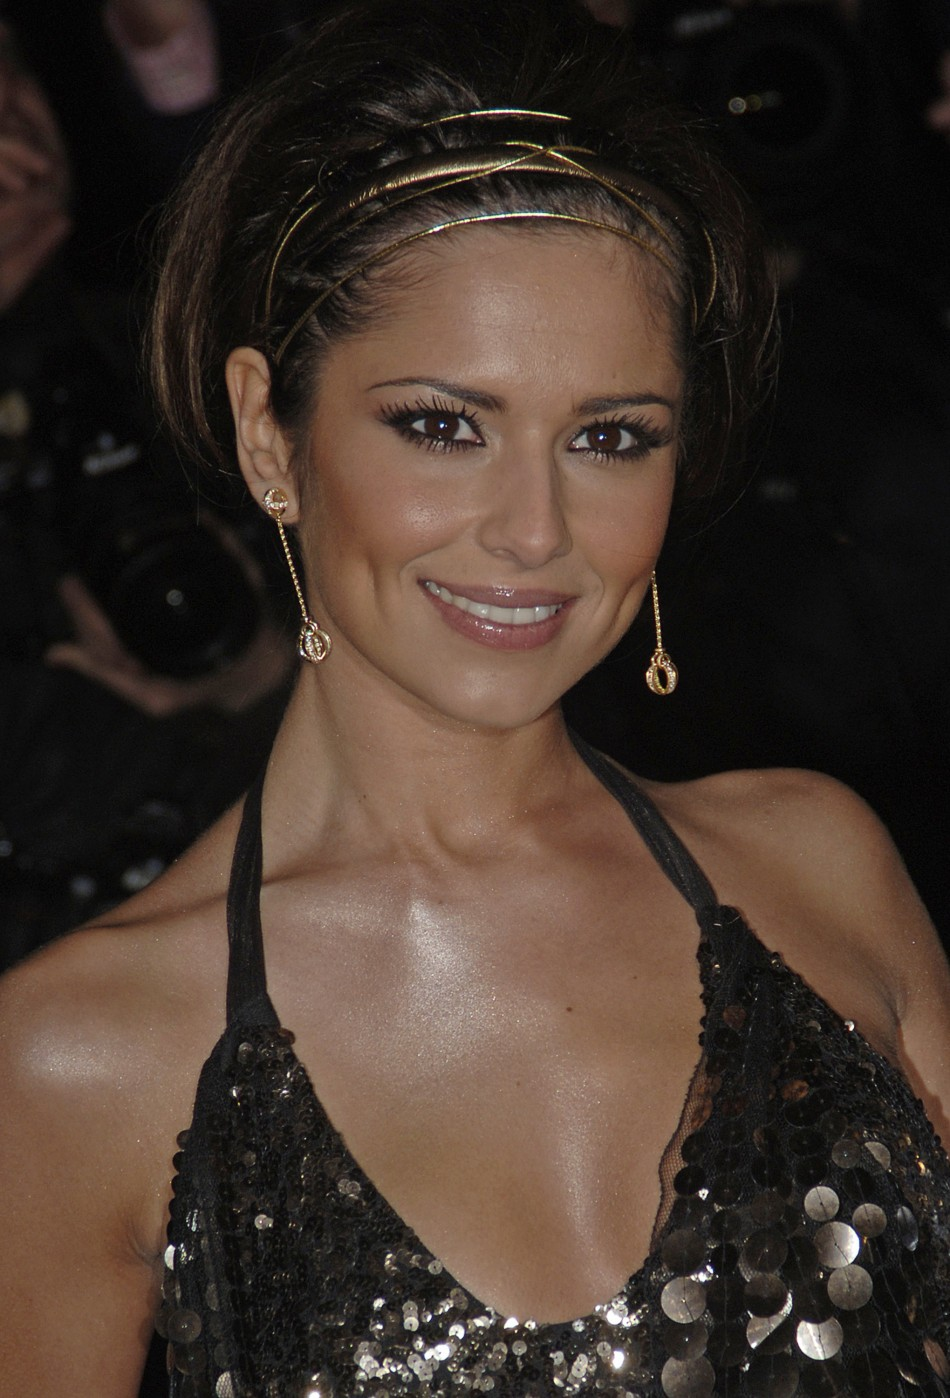 Singer Cheryl Cole from British group Girls Aloud poses at the world premiere of quotSt Triniansquot in London